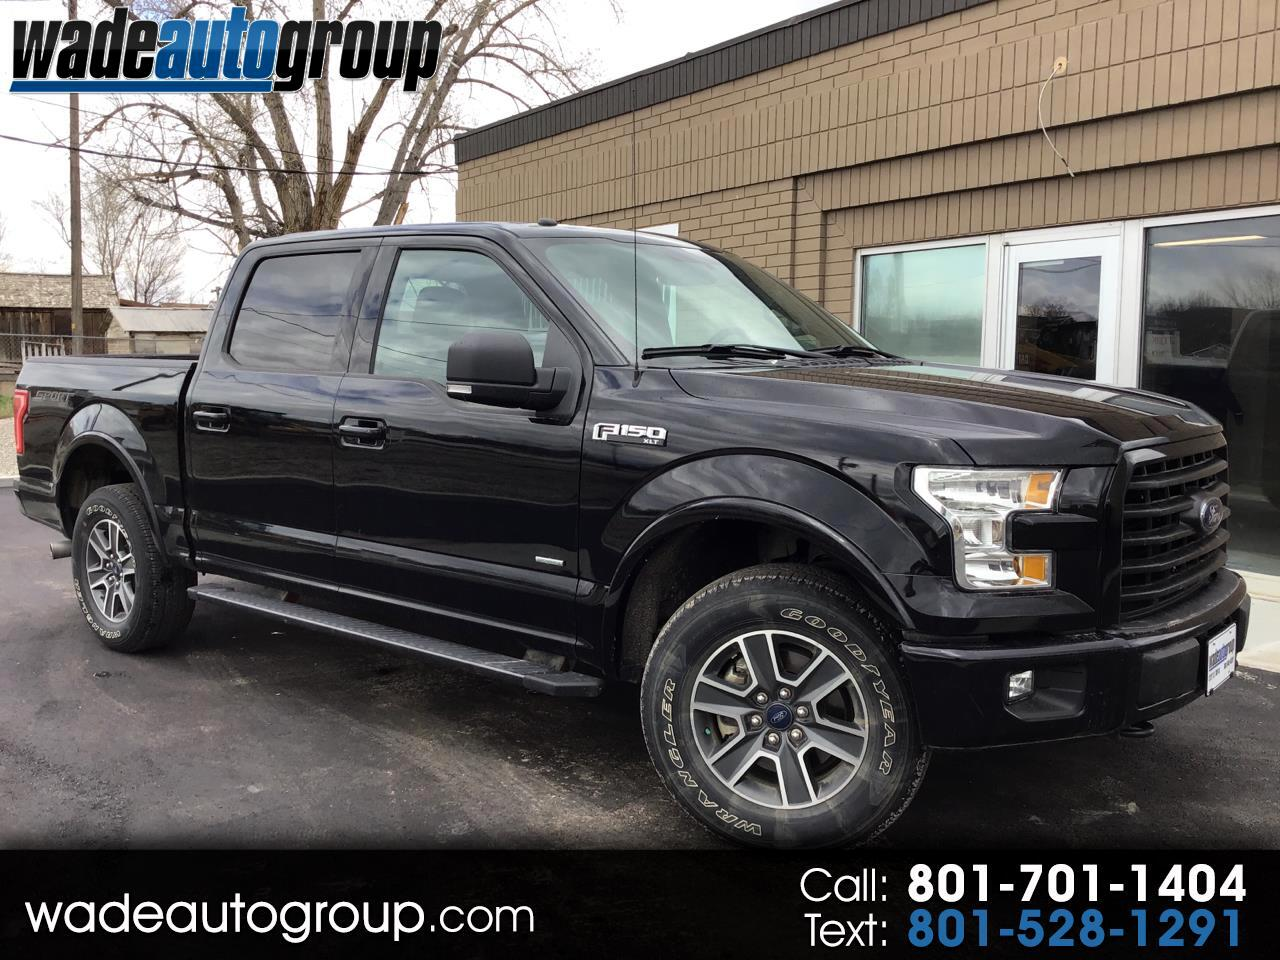 2016 Ford F-150 XLT Sport SuperCrew 2.7L V6 Turbo Ecoboost 4WD